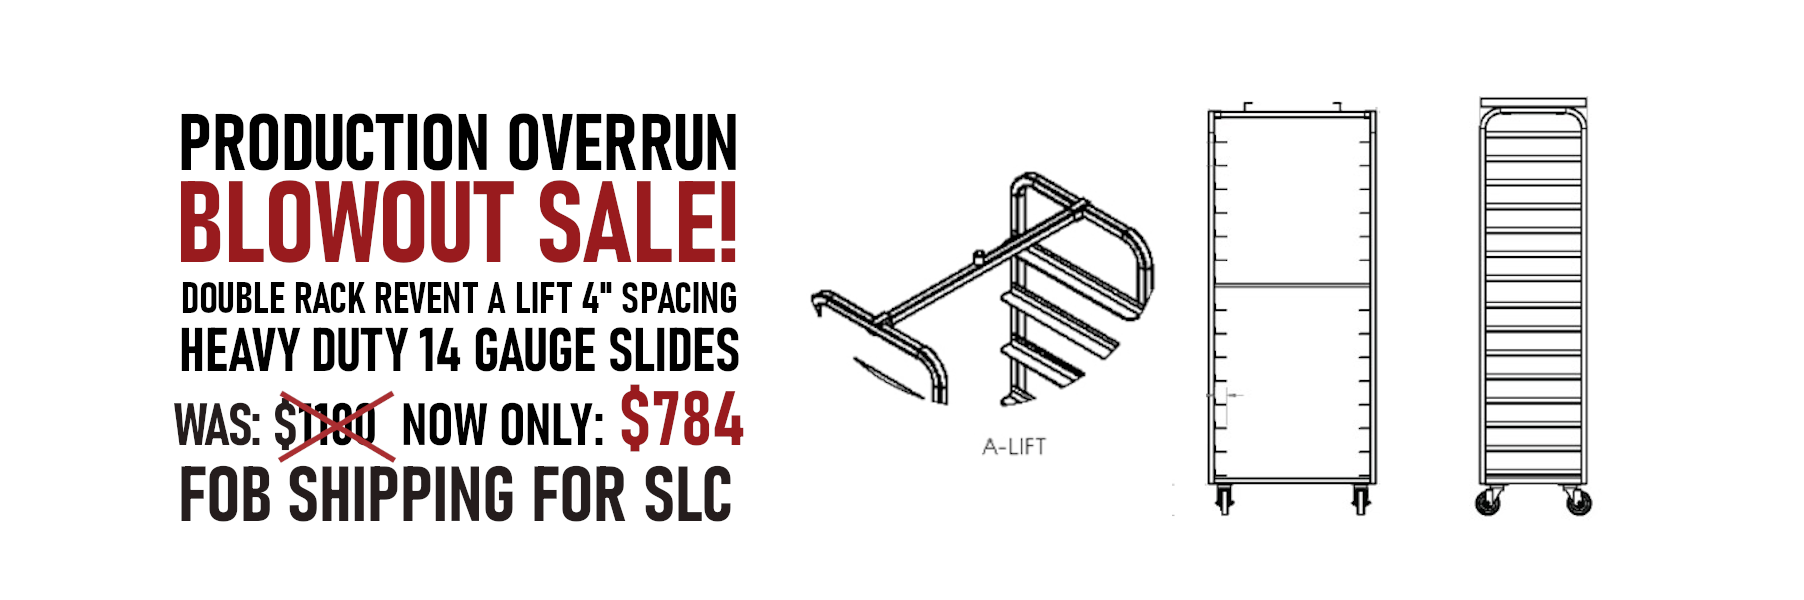 oven rack blow out sale